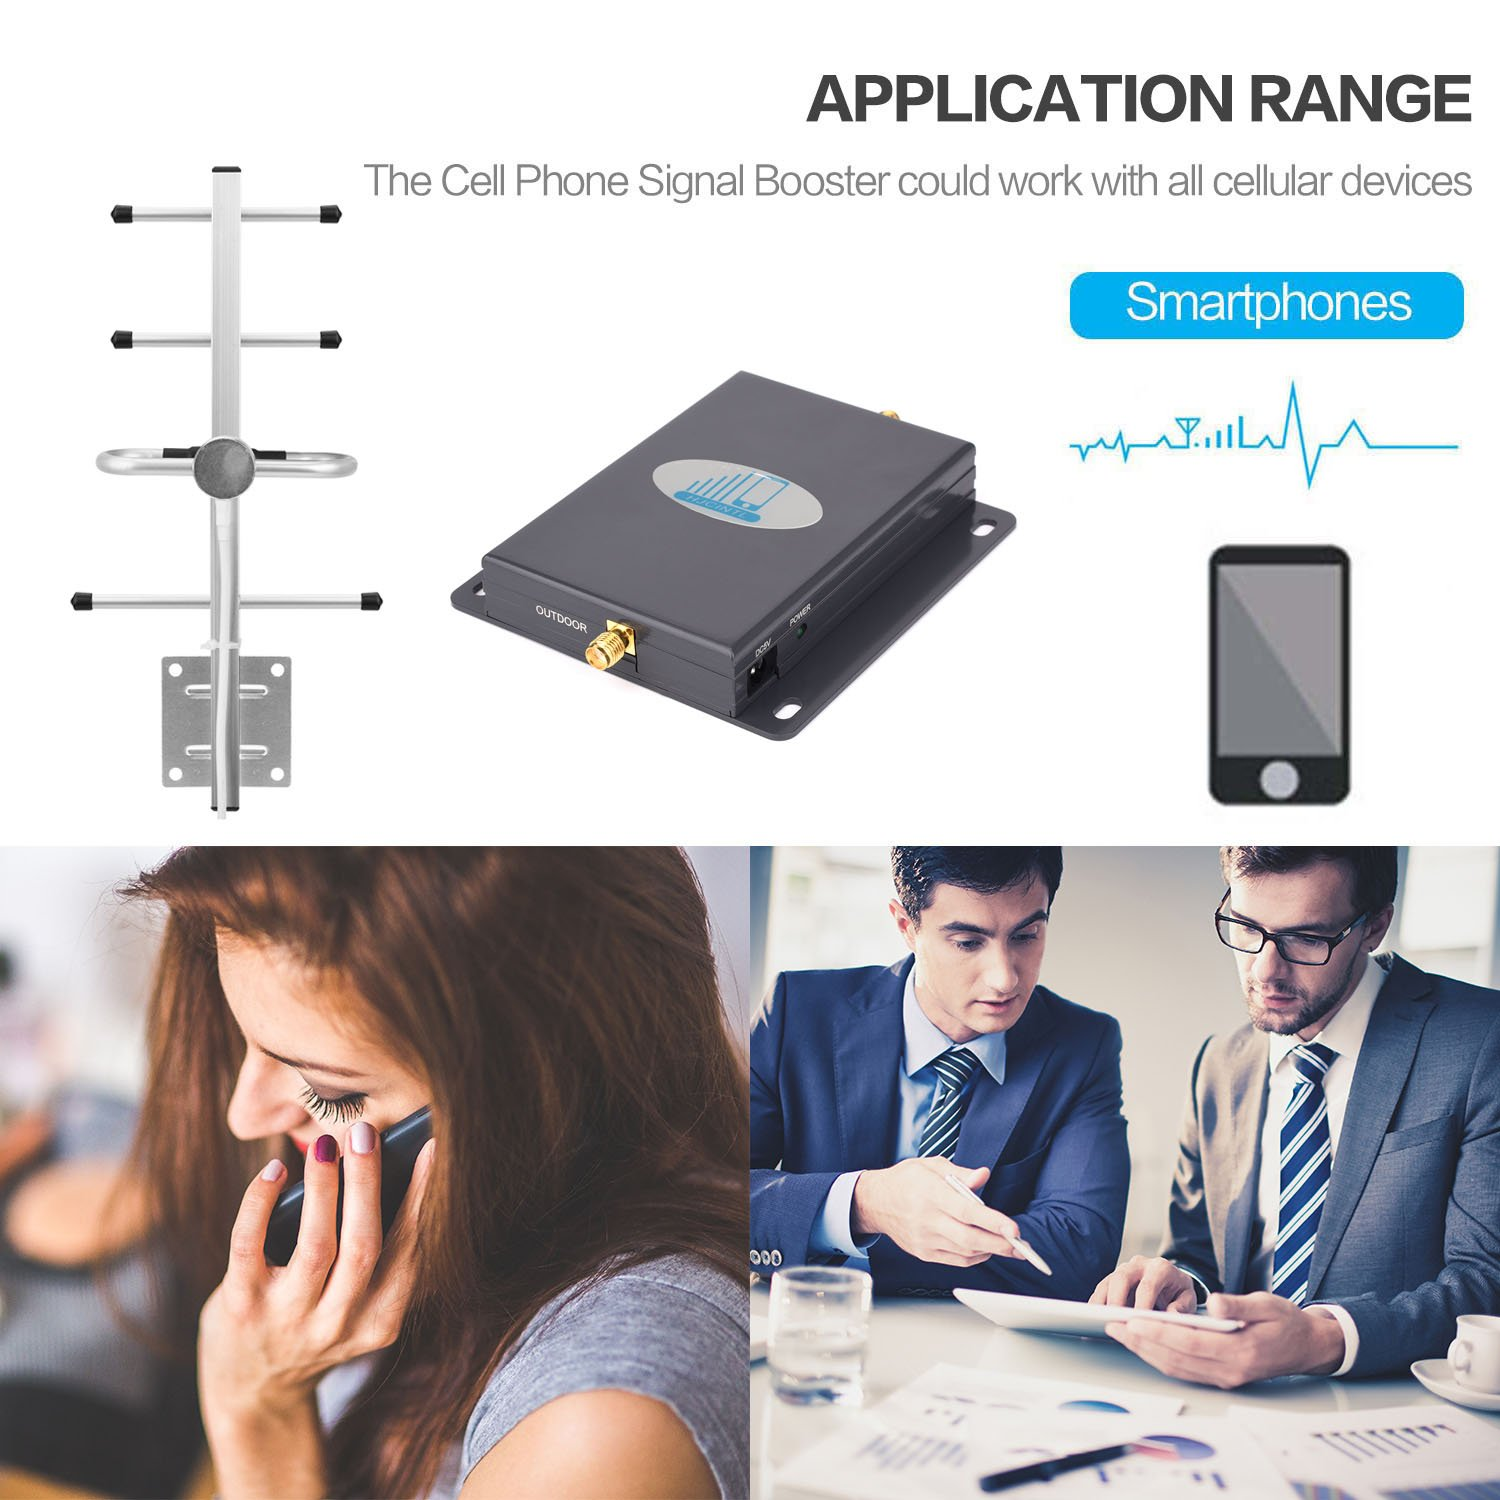 Cell Phone Signal Booster 4G Lte Verizon Cell signal Booster HJCINTL High Gain 65dB Band13 700MHz Home Mobile Phone Signal Booster Amplifier with Yagi/Whip by HJCINTL (Image #5)